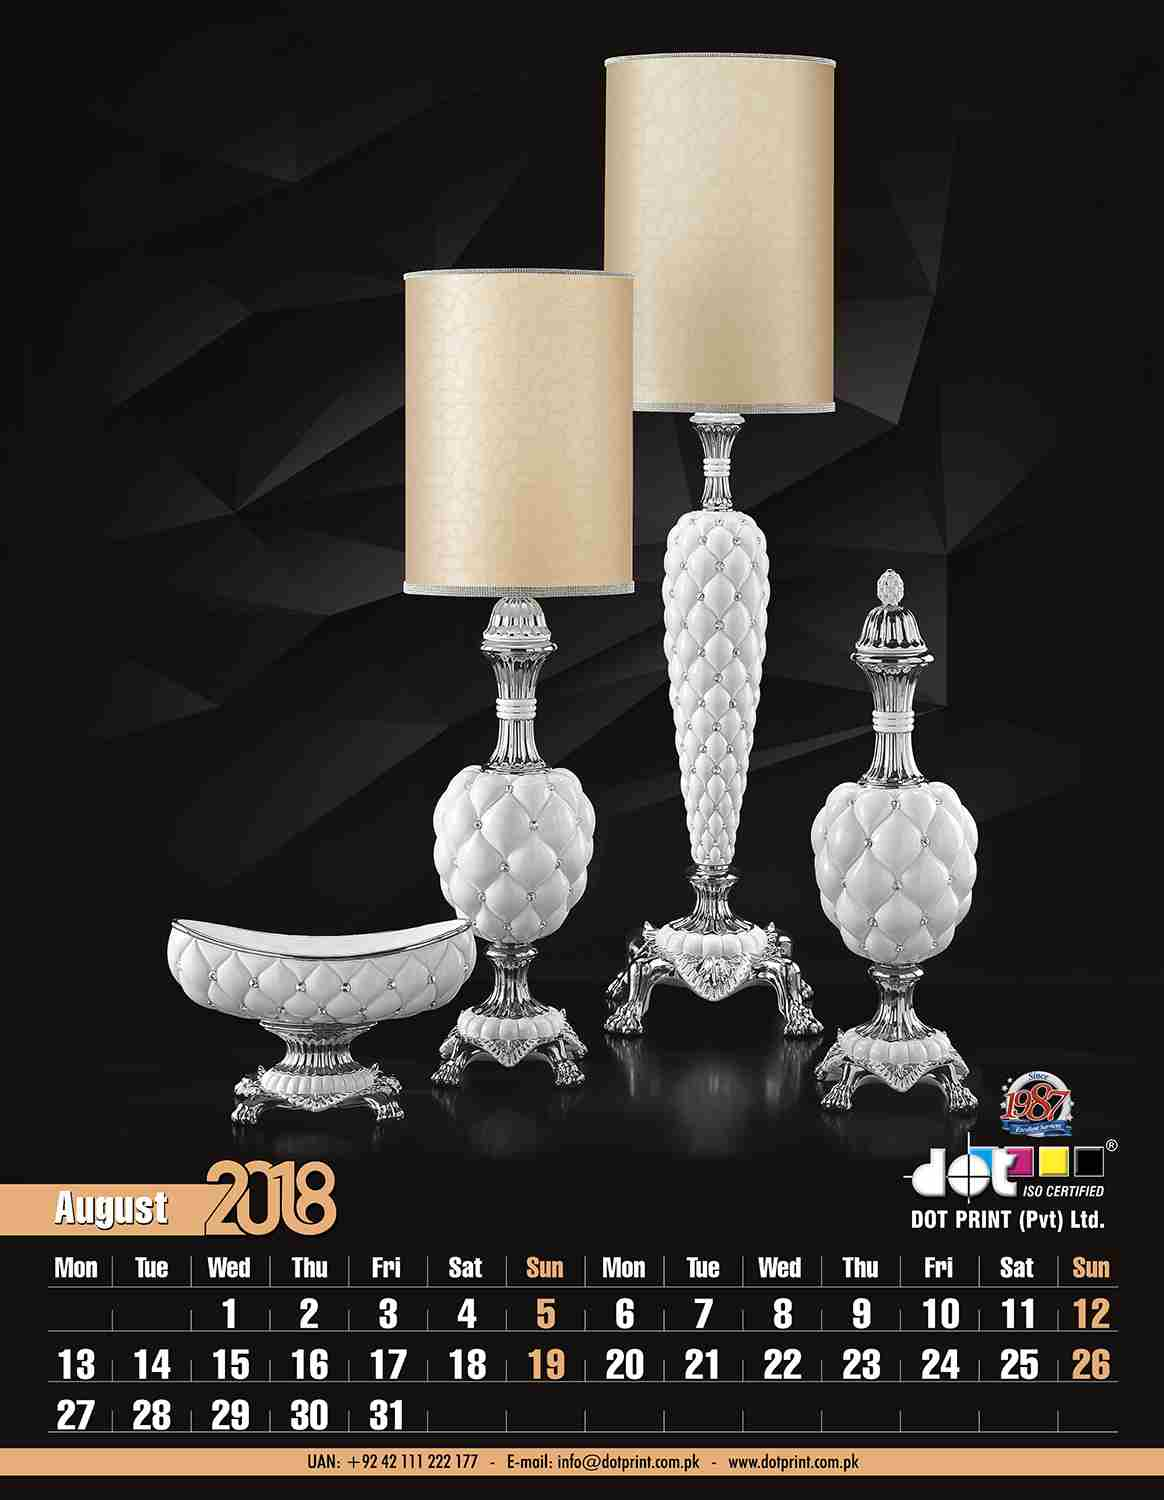 50080430152-00 Dotprint Calendar 2018 Set#2,2-2